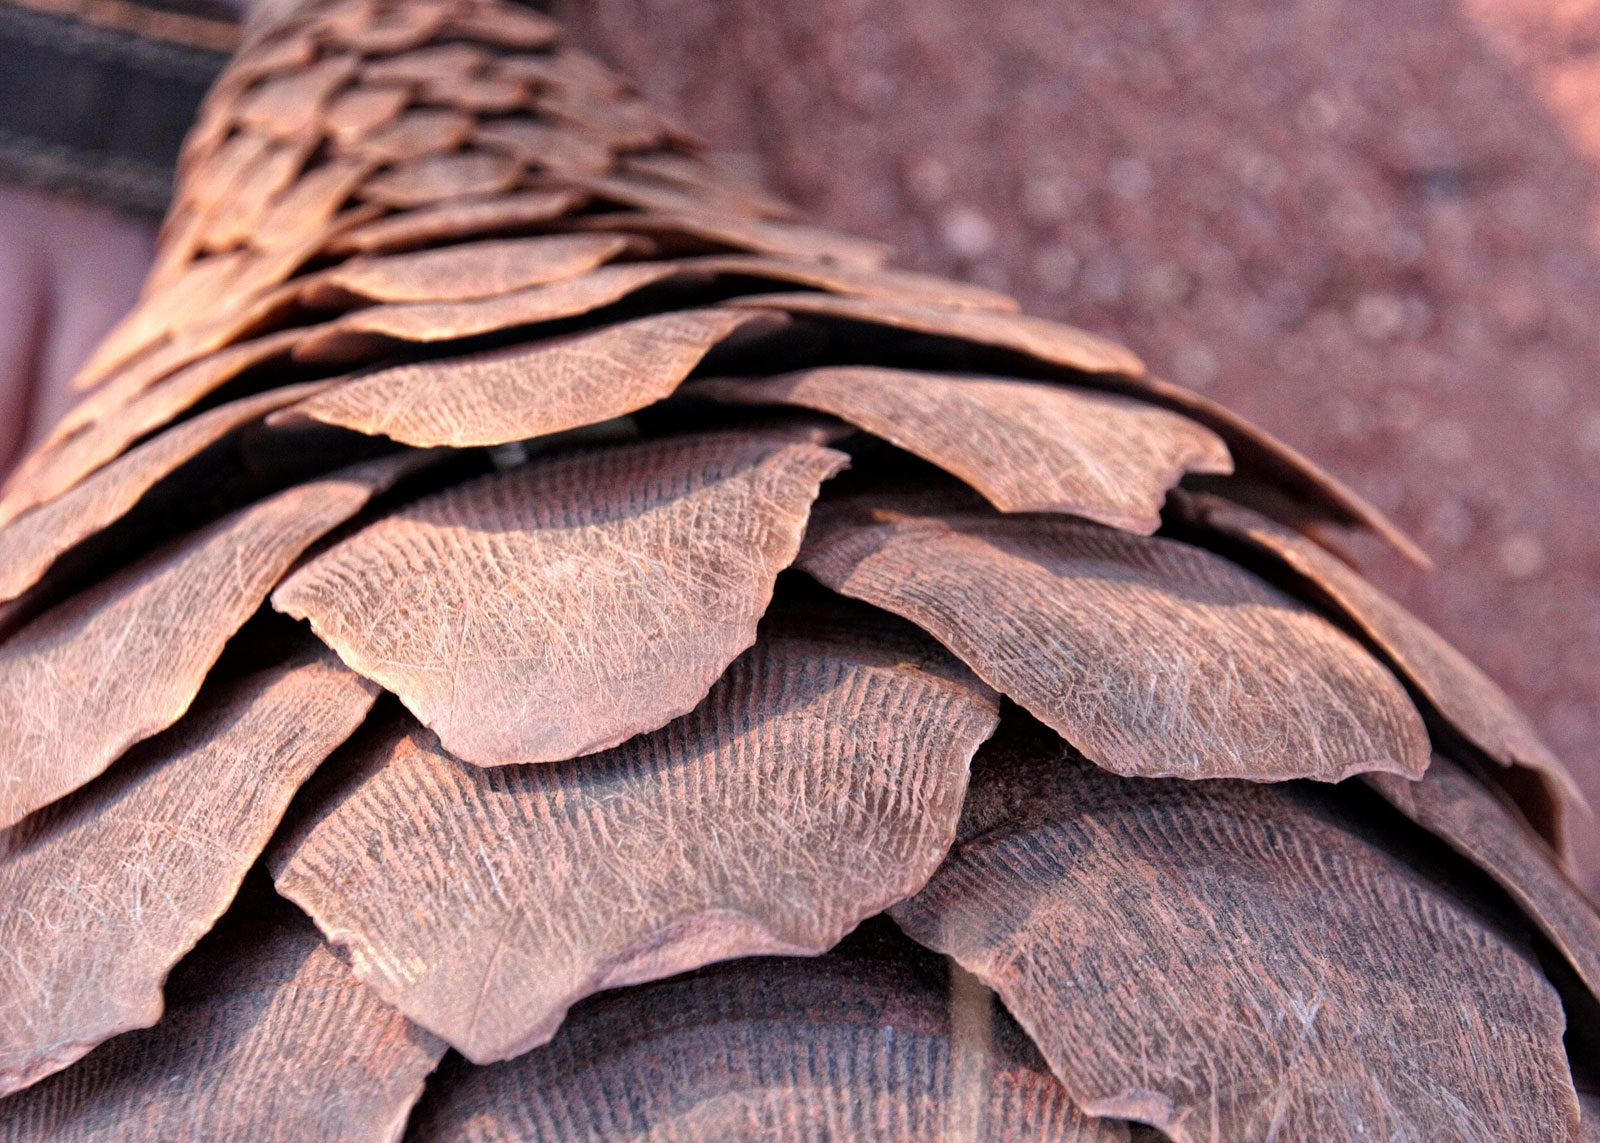 Scott-hurd-pangolin-scales.jpg